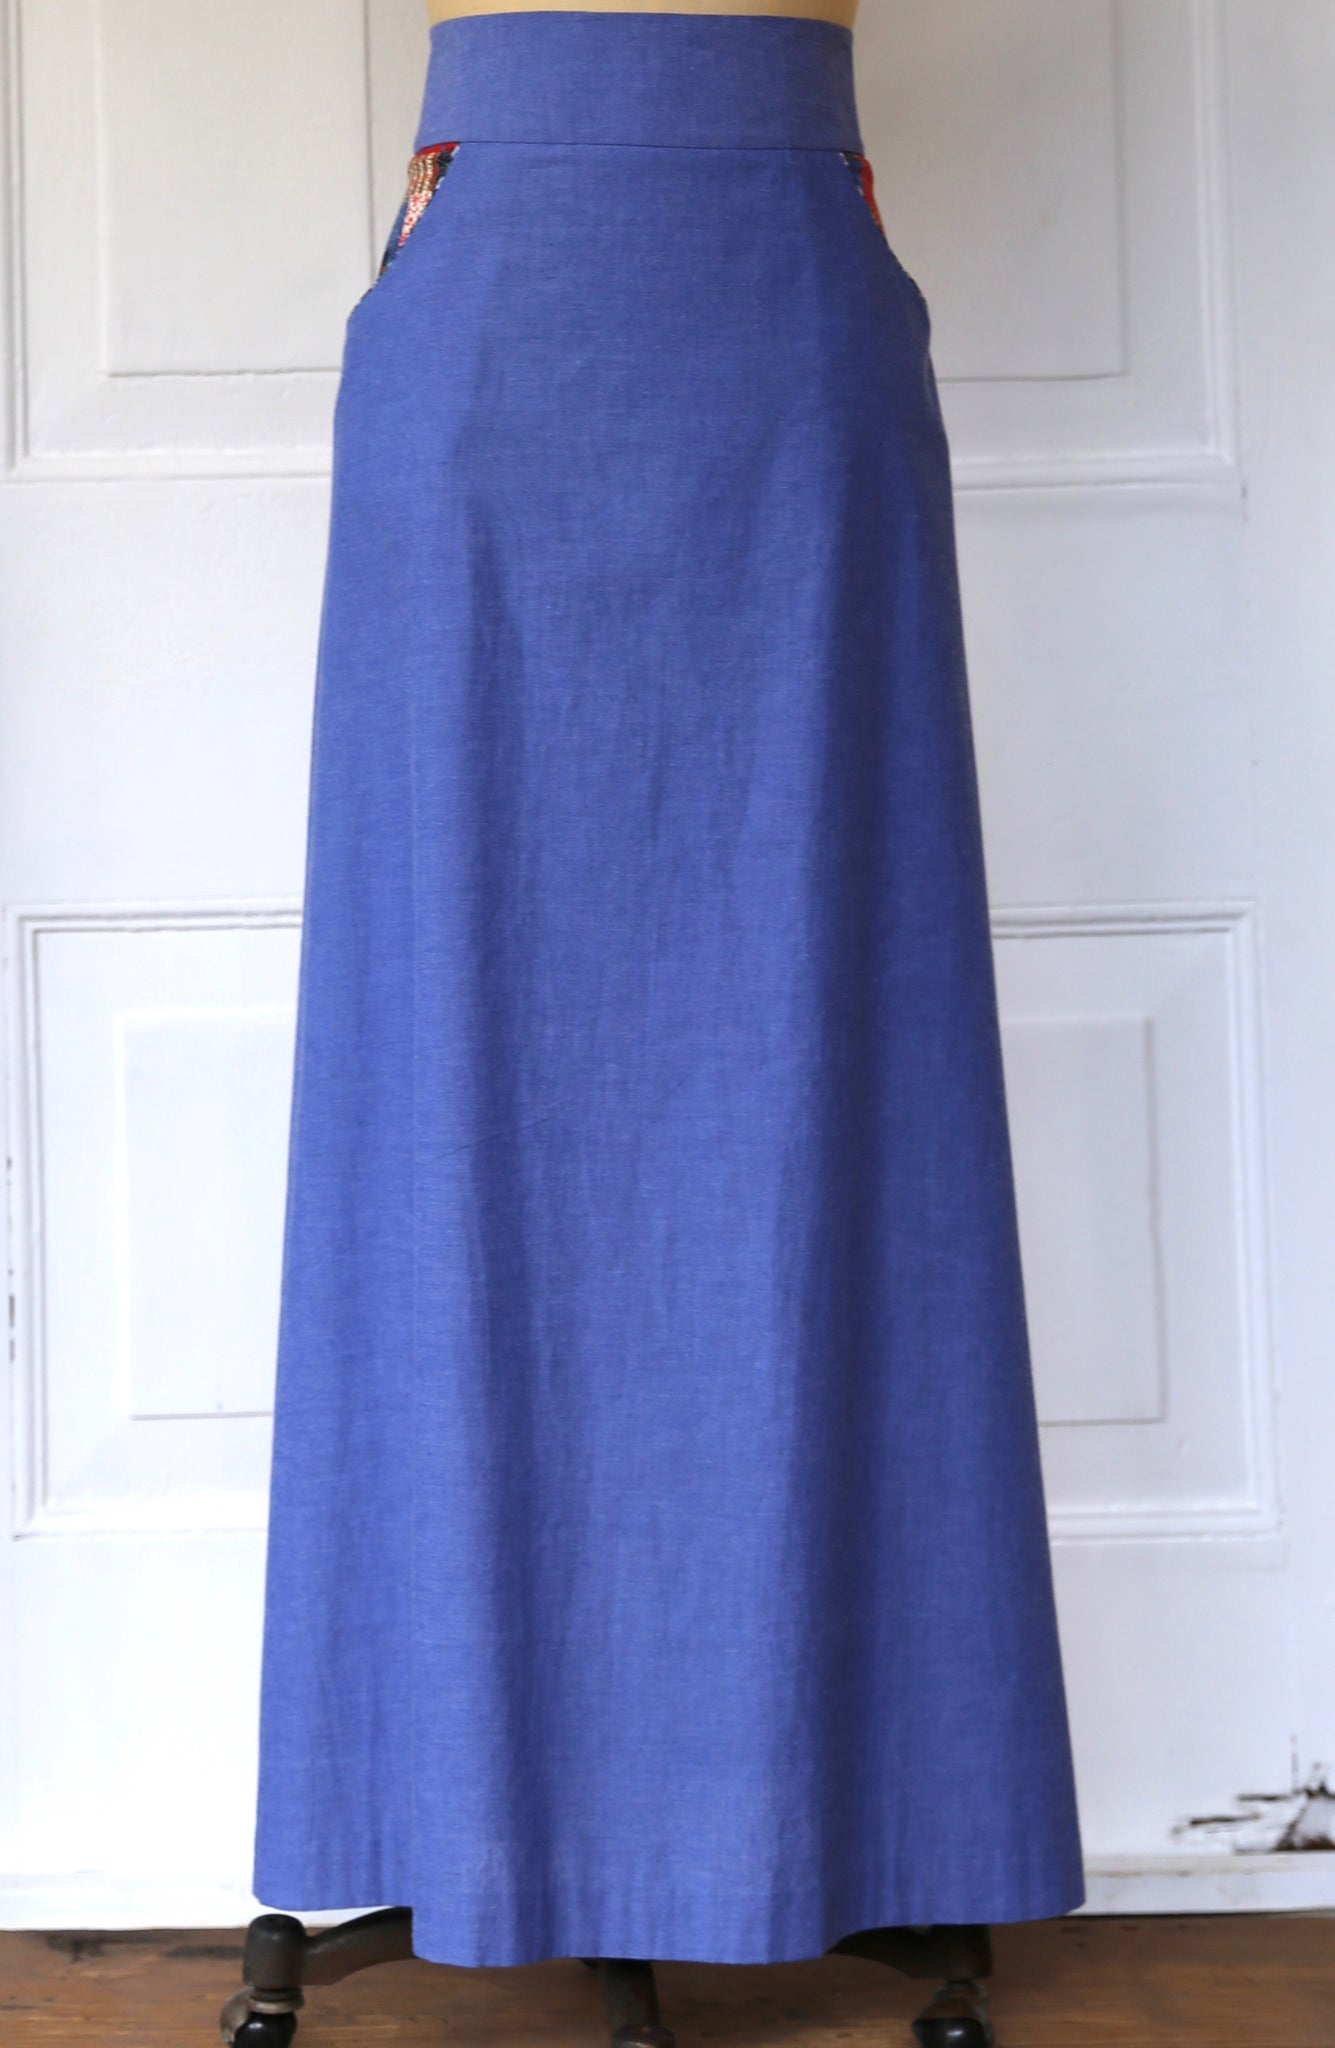 Blue Sky Prairie skirt SOLD OUT